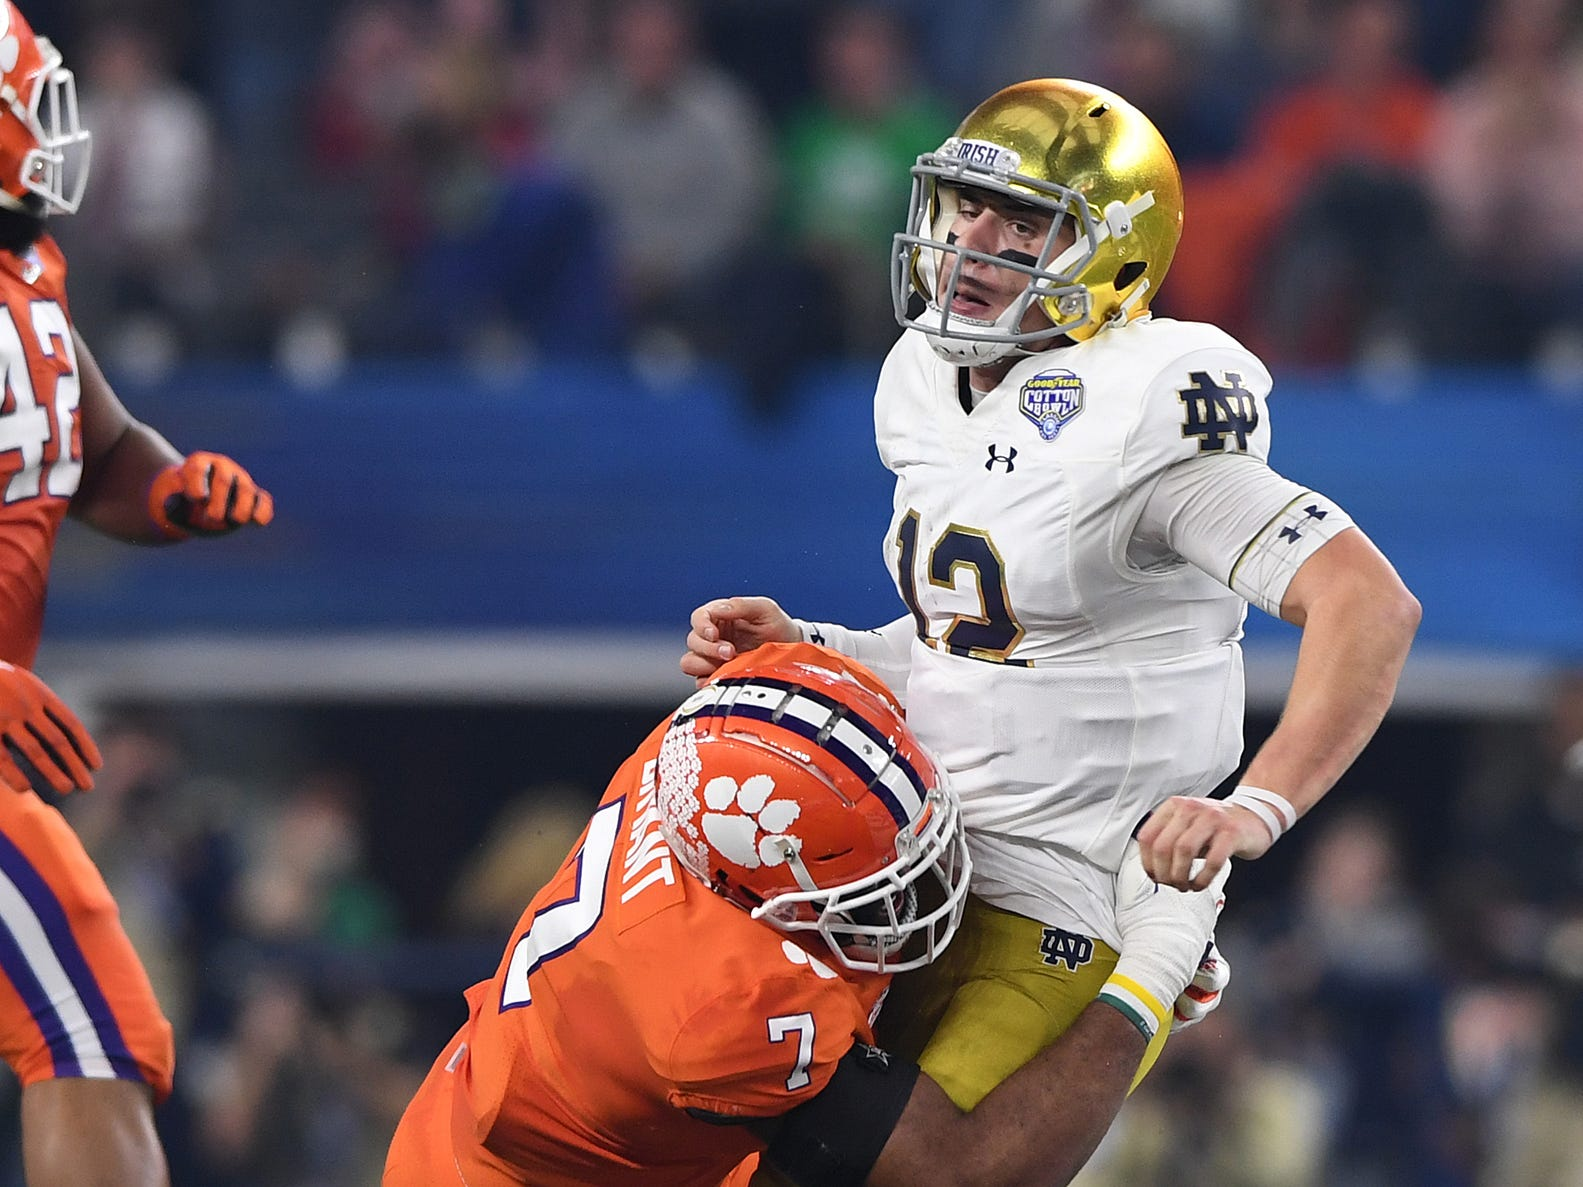 Clemson defensive lineman Austin Bryant (7) hits Notre Dame quarterback Ian Book (12) during the 2nd quarter of the Goodyear Cotton Bowl at AT&T stadium in Arlington, TX Saturday, December 29, 2018.